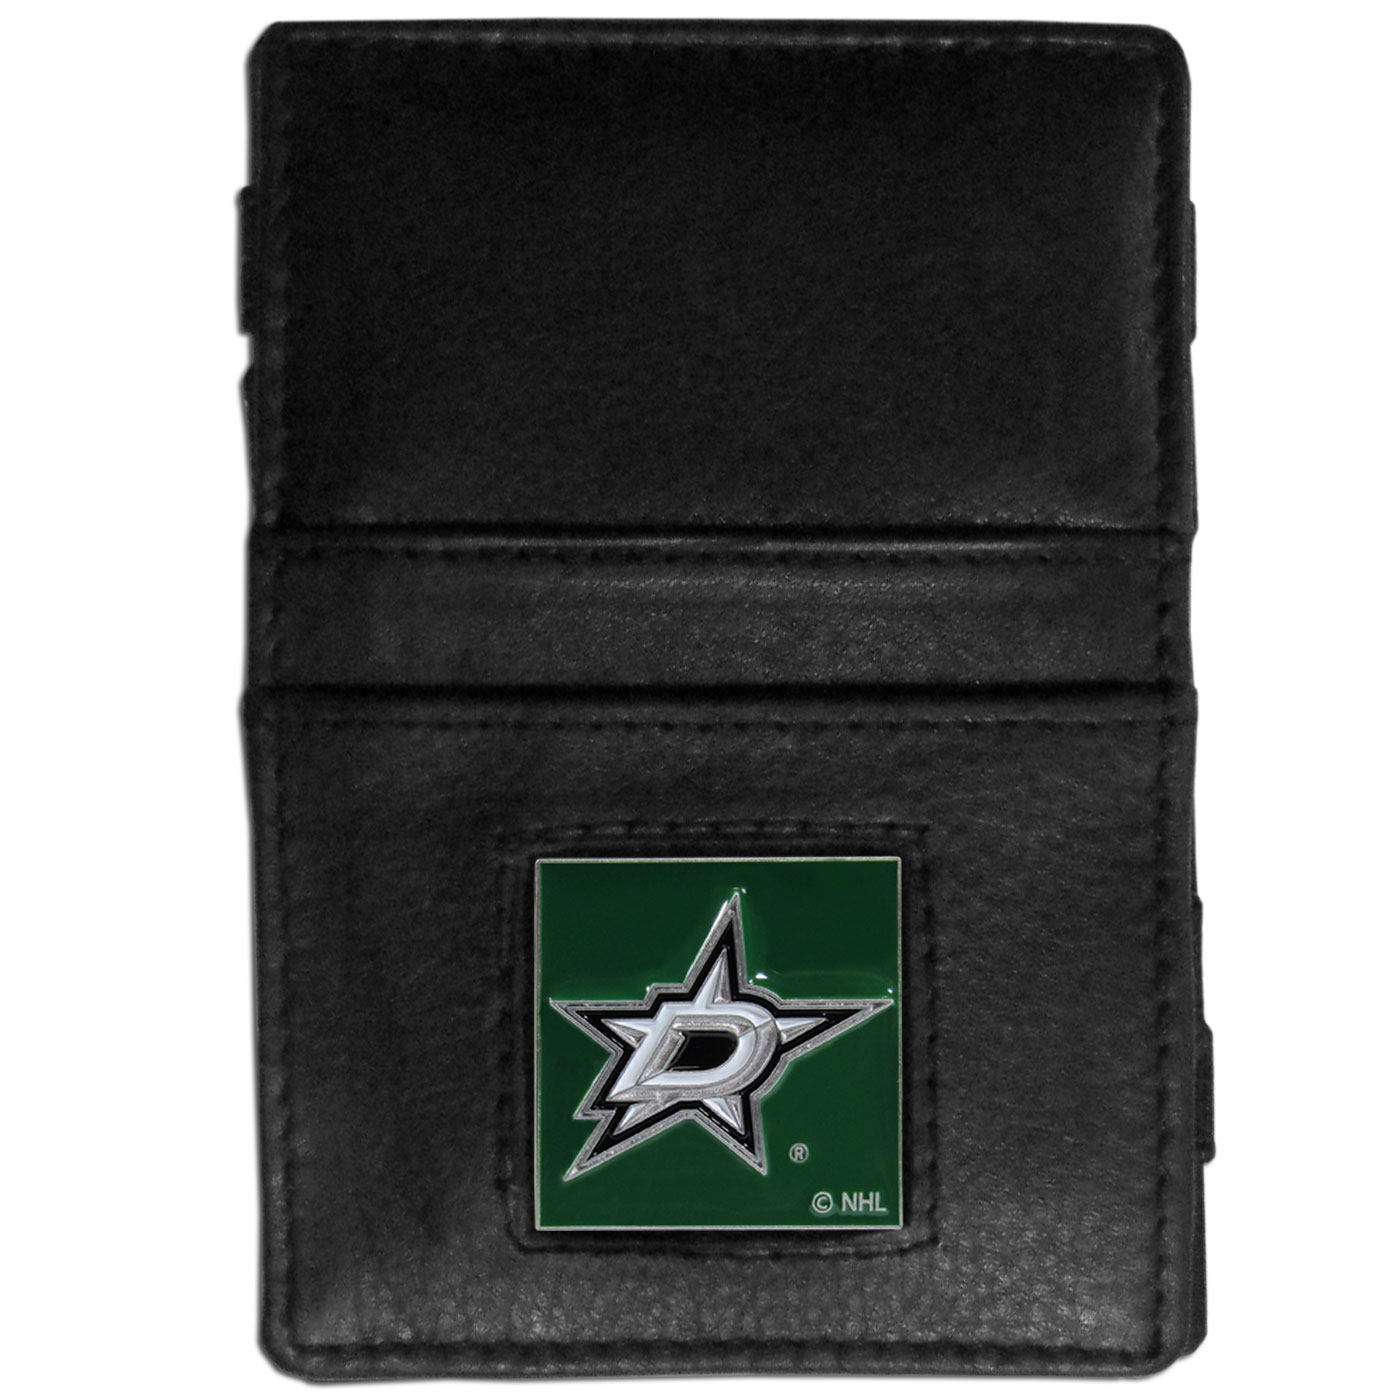 Dallas Stars™ Leather Jacob's Ladder Wallet - This officially licensed, innovative jacob's ladder wallet design traps cash with just a simple flip of the wallet! There are also outer pockets to store your ID and credit cards. The wallet is made of fine quality leather with a fully cast & enameled Dallas Stars™ emblem on the front.